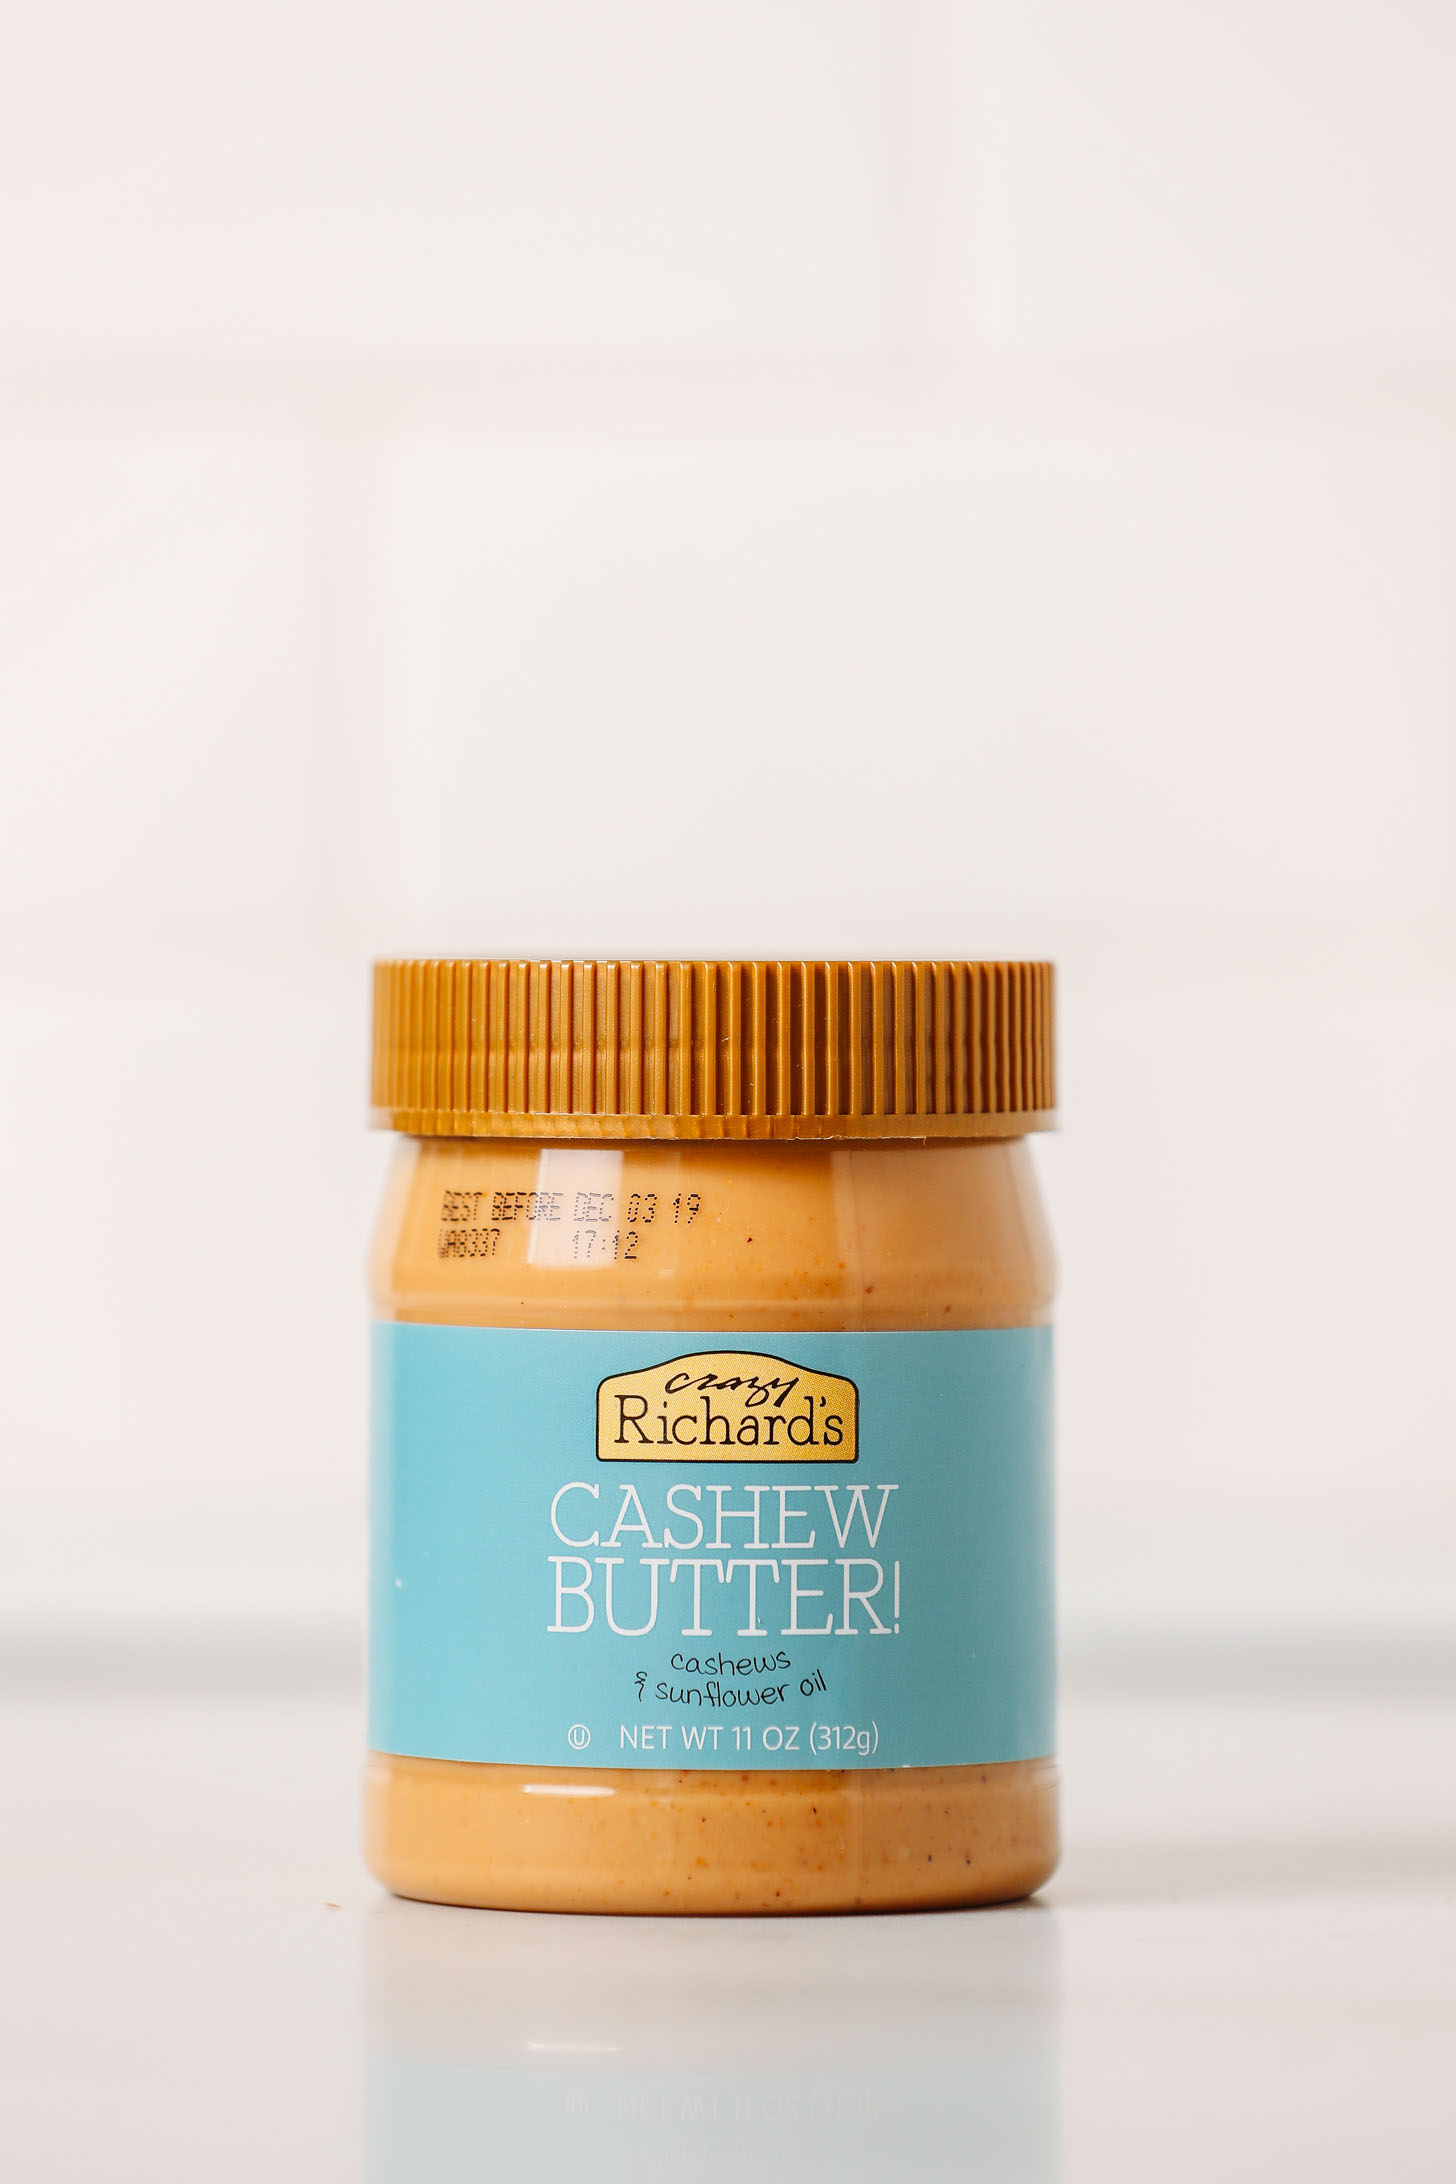 Jar of Crazy Richard's Cashew Butter as part of our cashew butter brands review